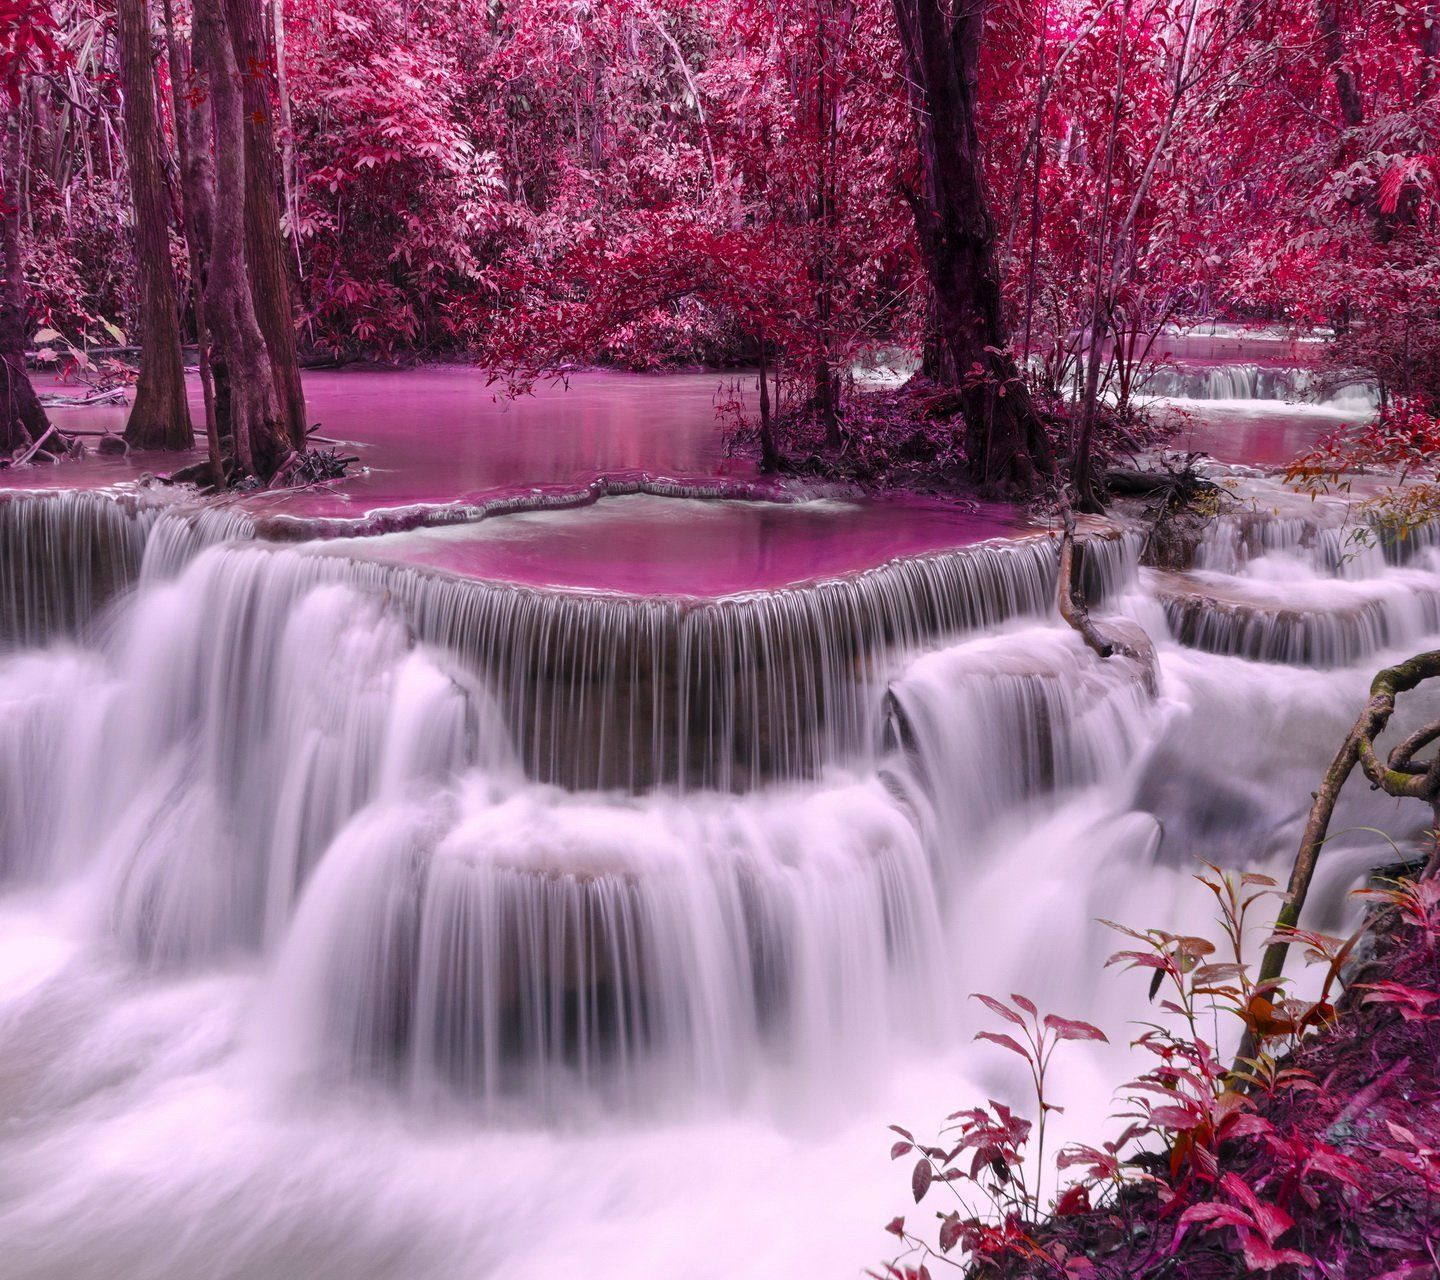 Pin By Billy Odom On Places To Visit In 2020 Waterfall Scenery Waterfall Wallpaper Forest Waterfall